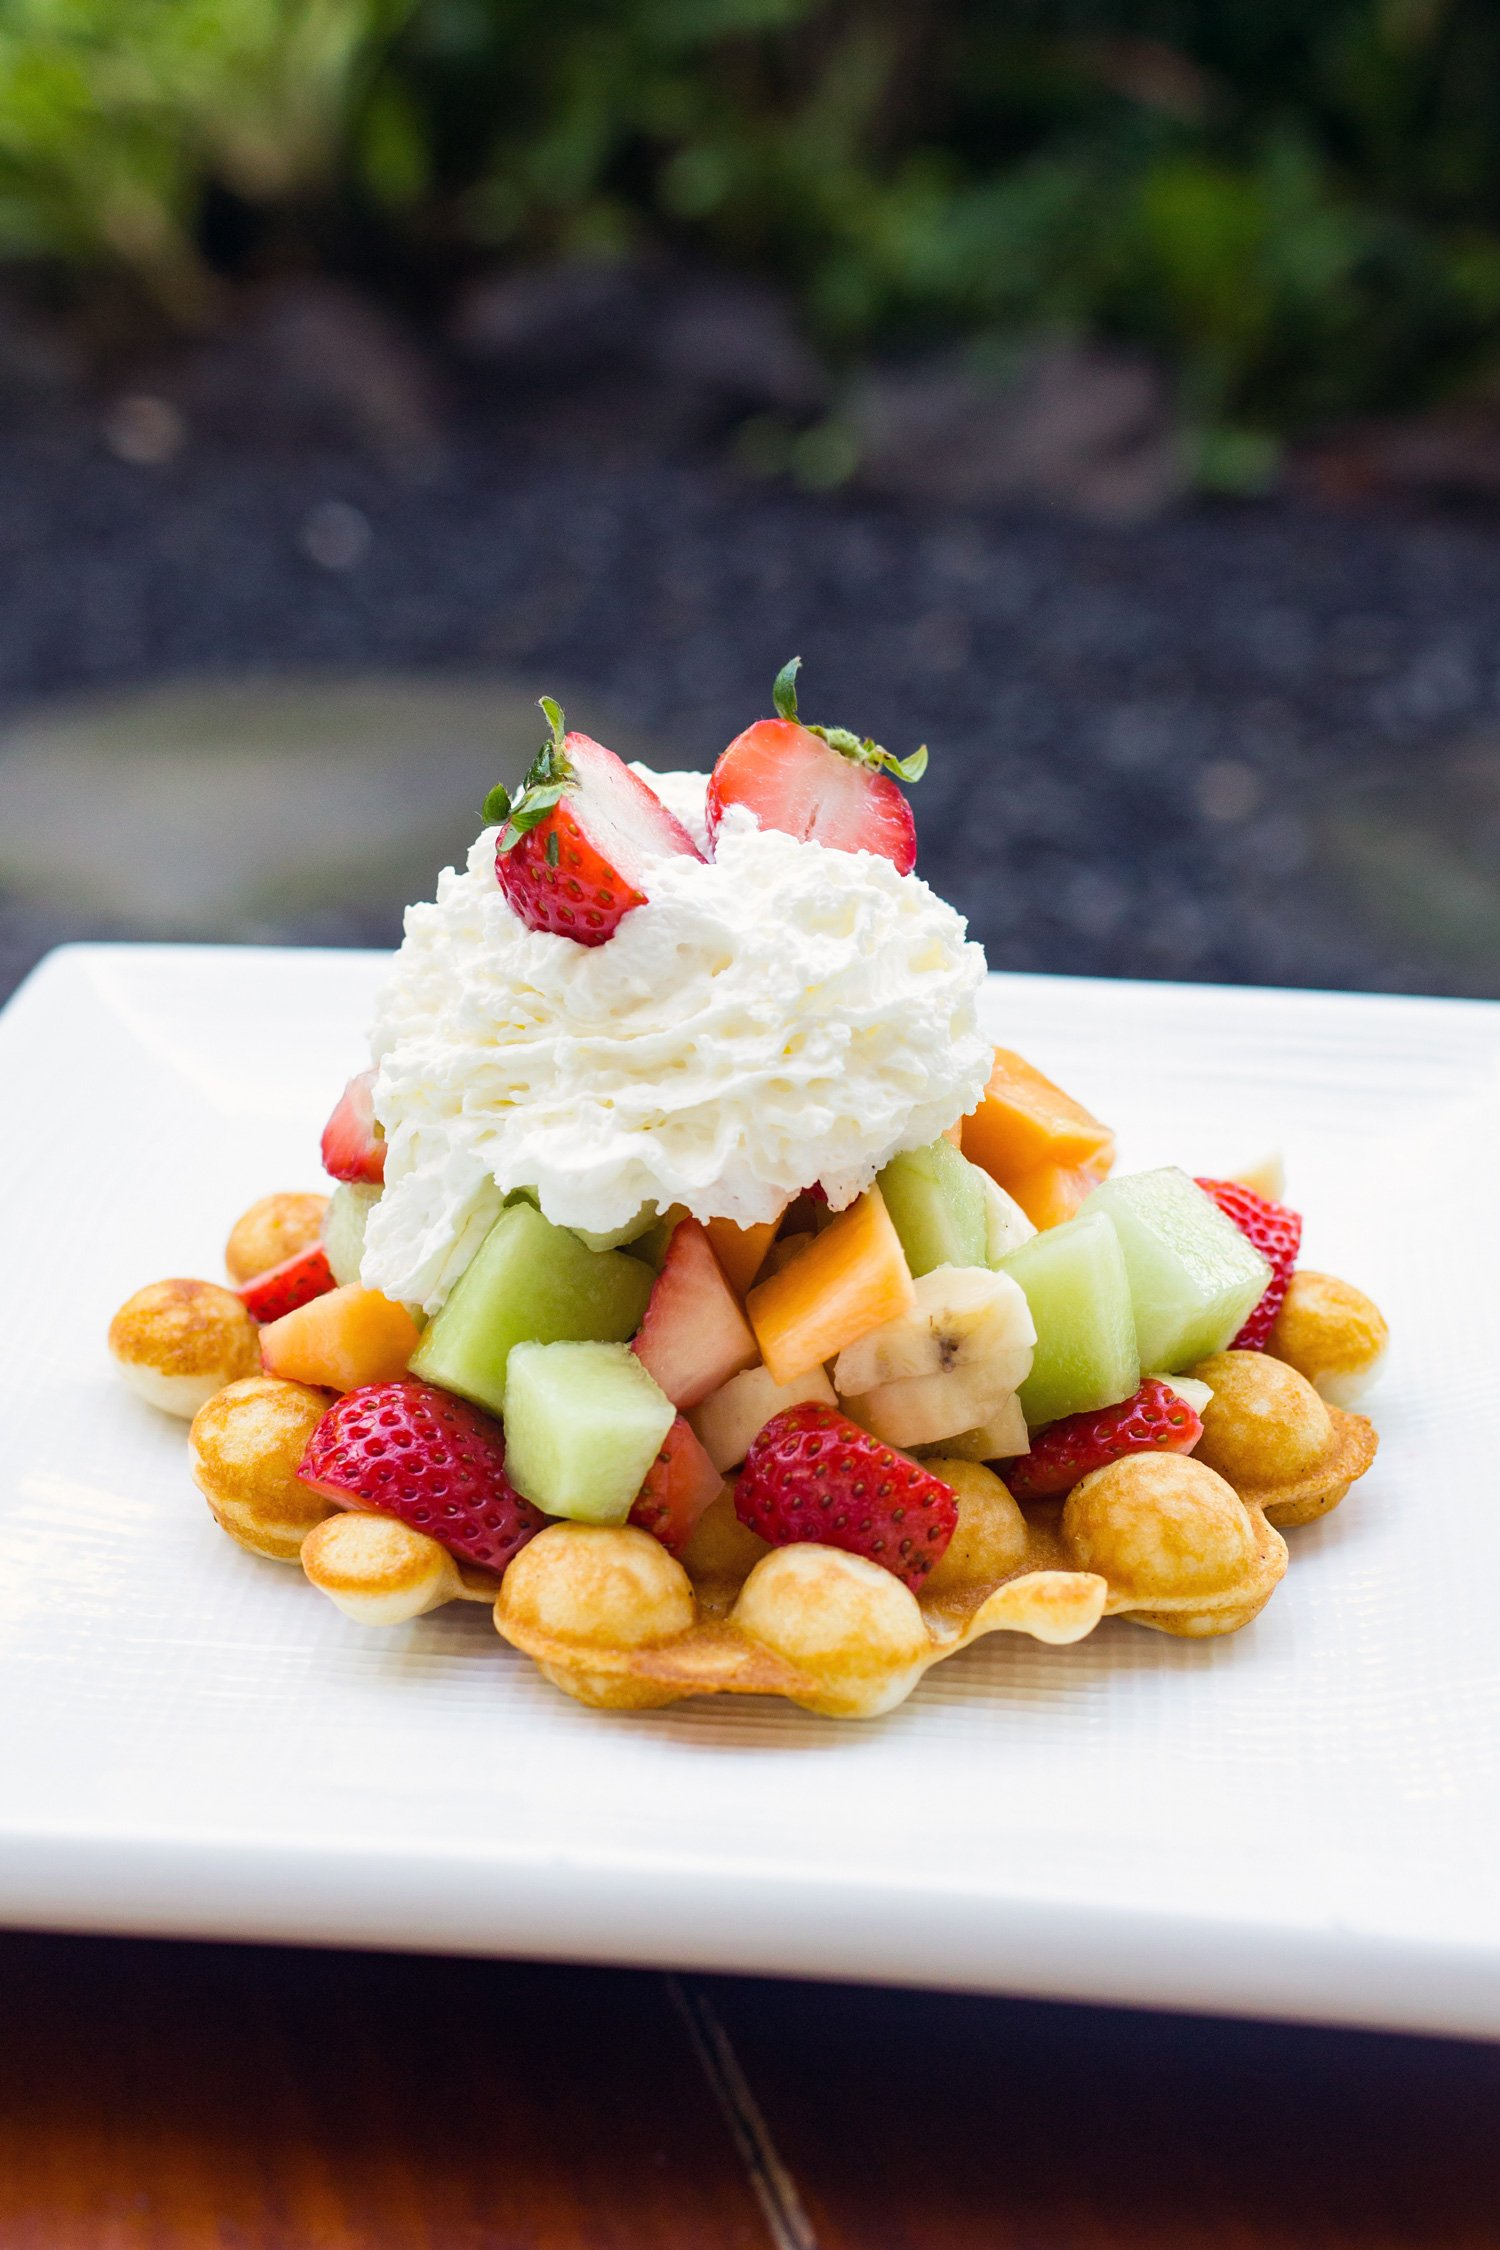 A Belgian Puffle with whipped cream and fruit